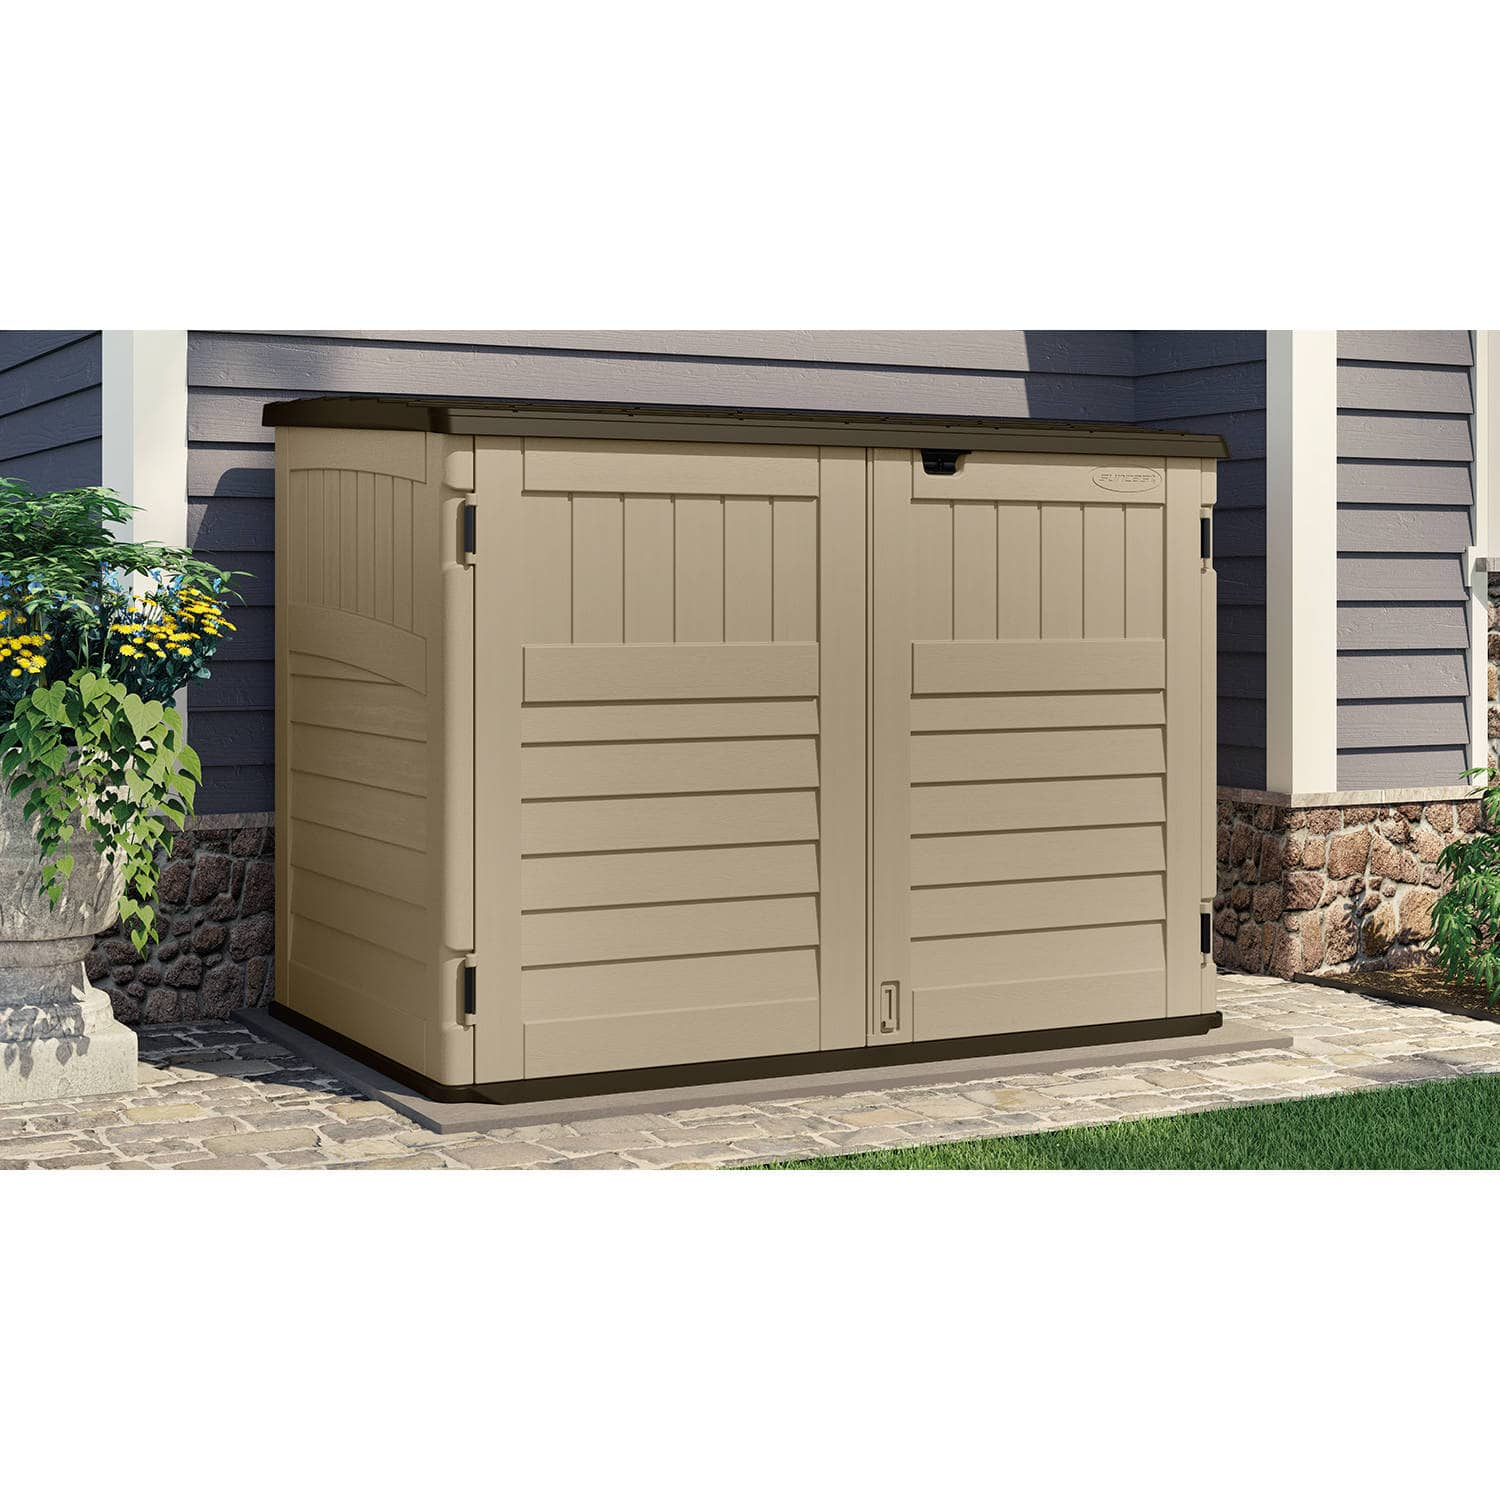 Suncast 70-cubic Feet Horizontal Storage Shed for $212 (Free in-store pickup)